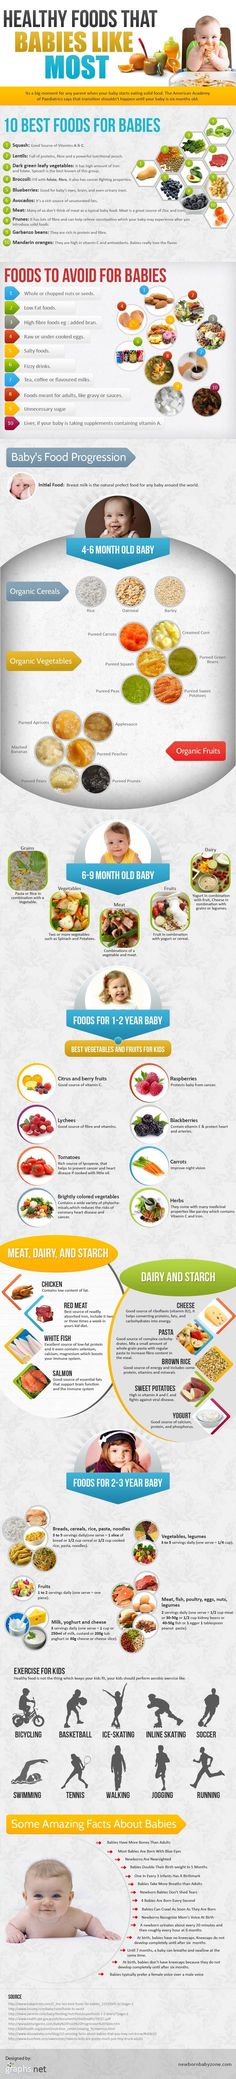 Healthy foods for baby